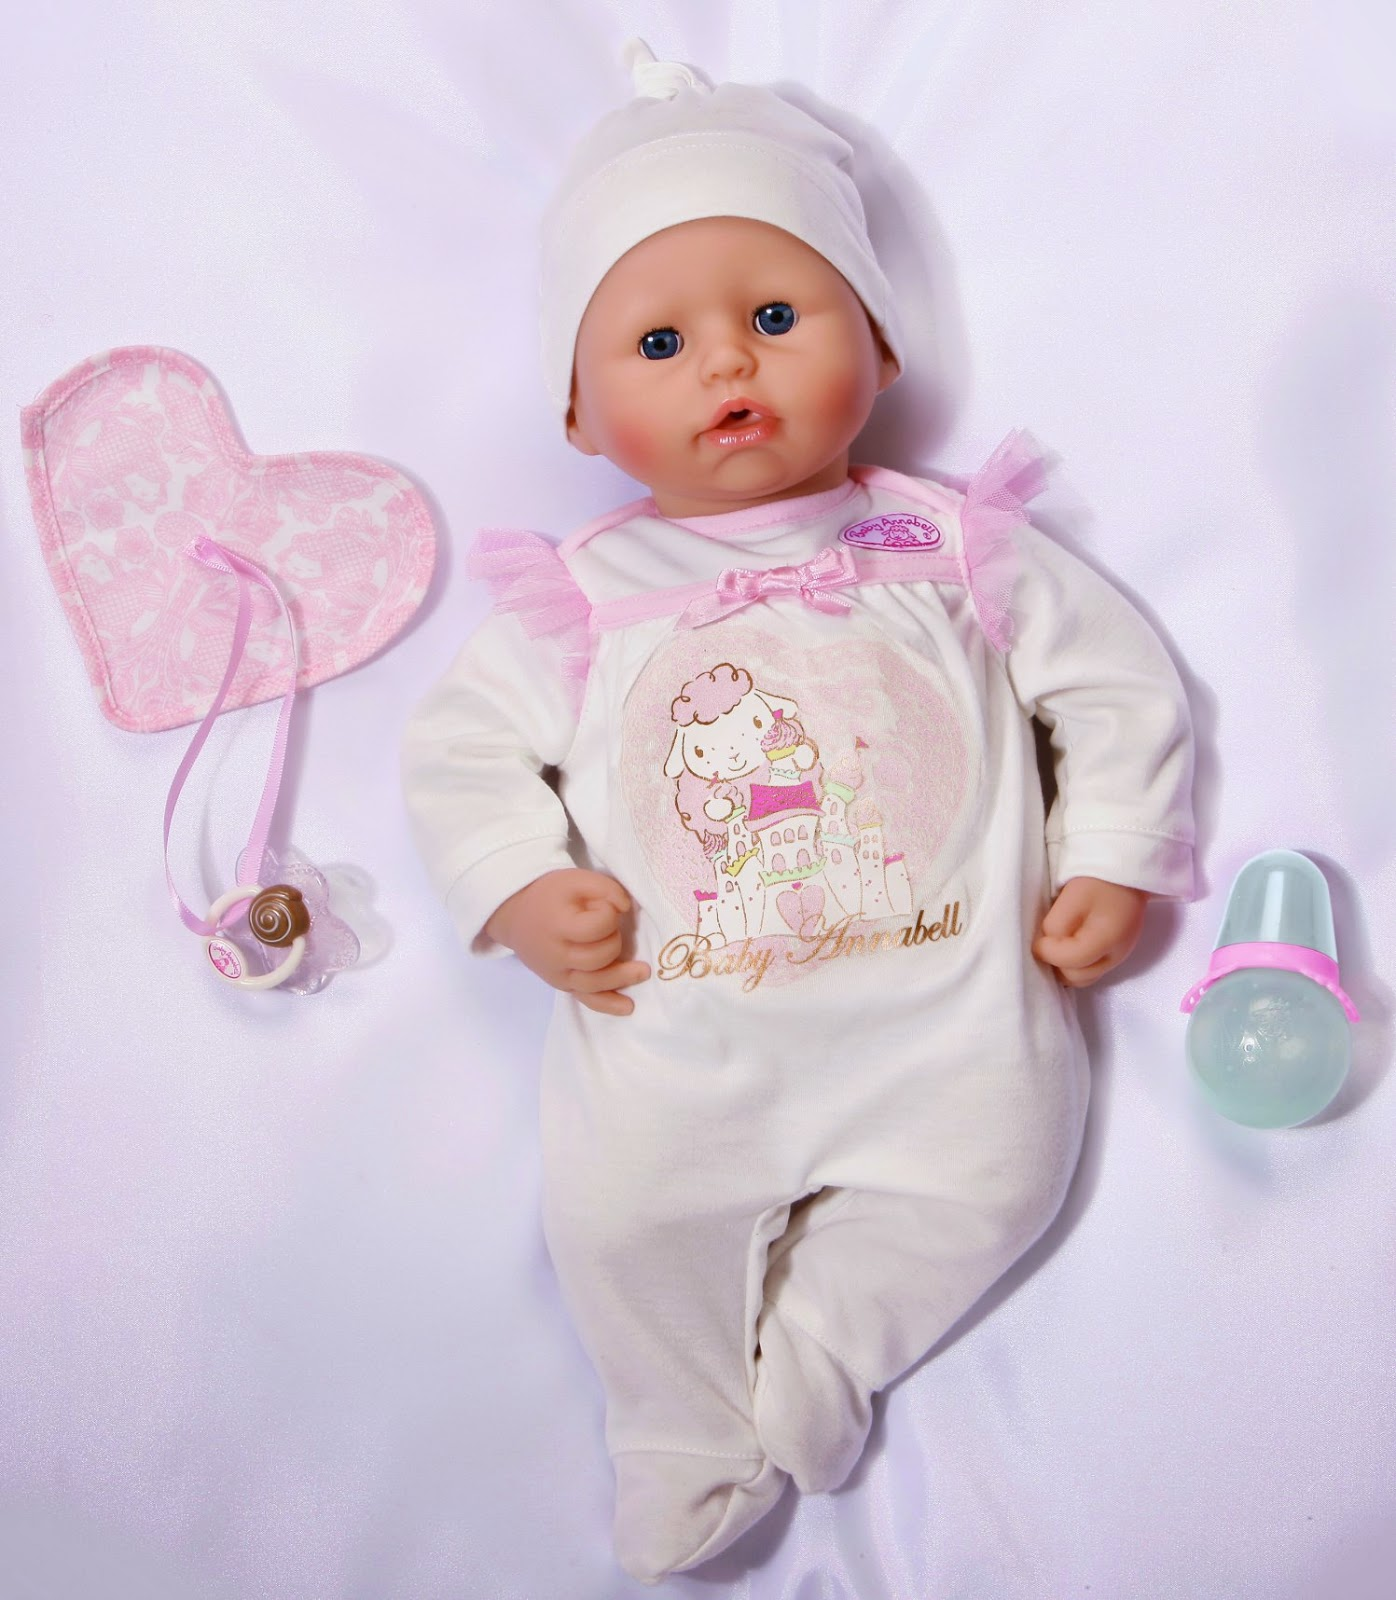 Zapf Creation, Baby Annabell Doll, toy doll giveaway